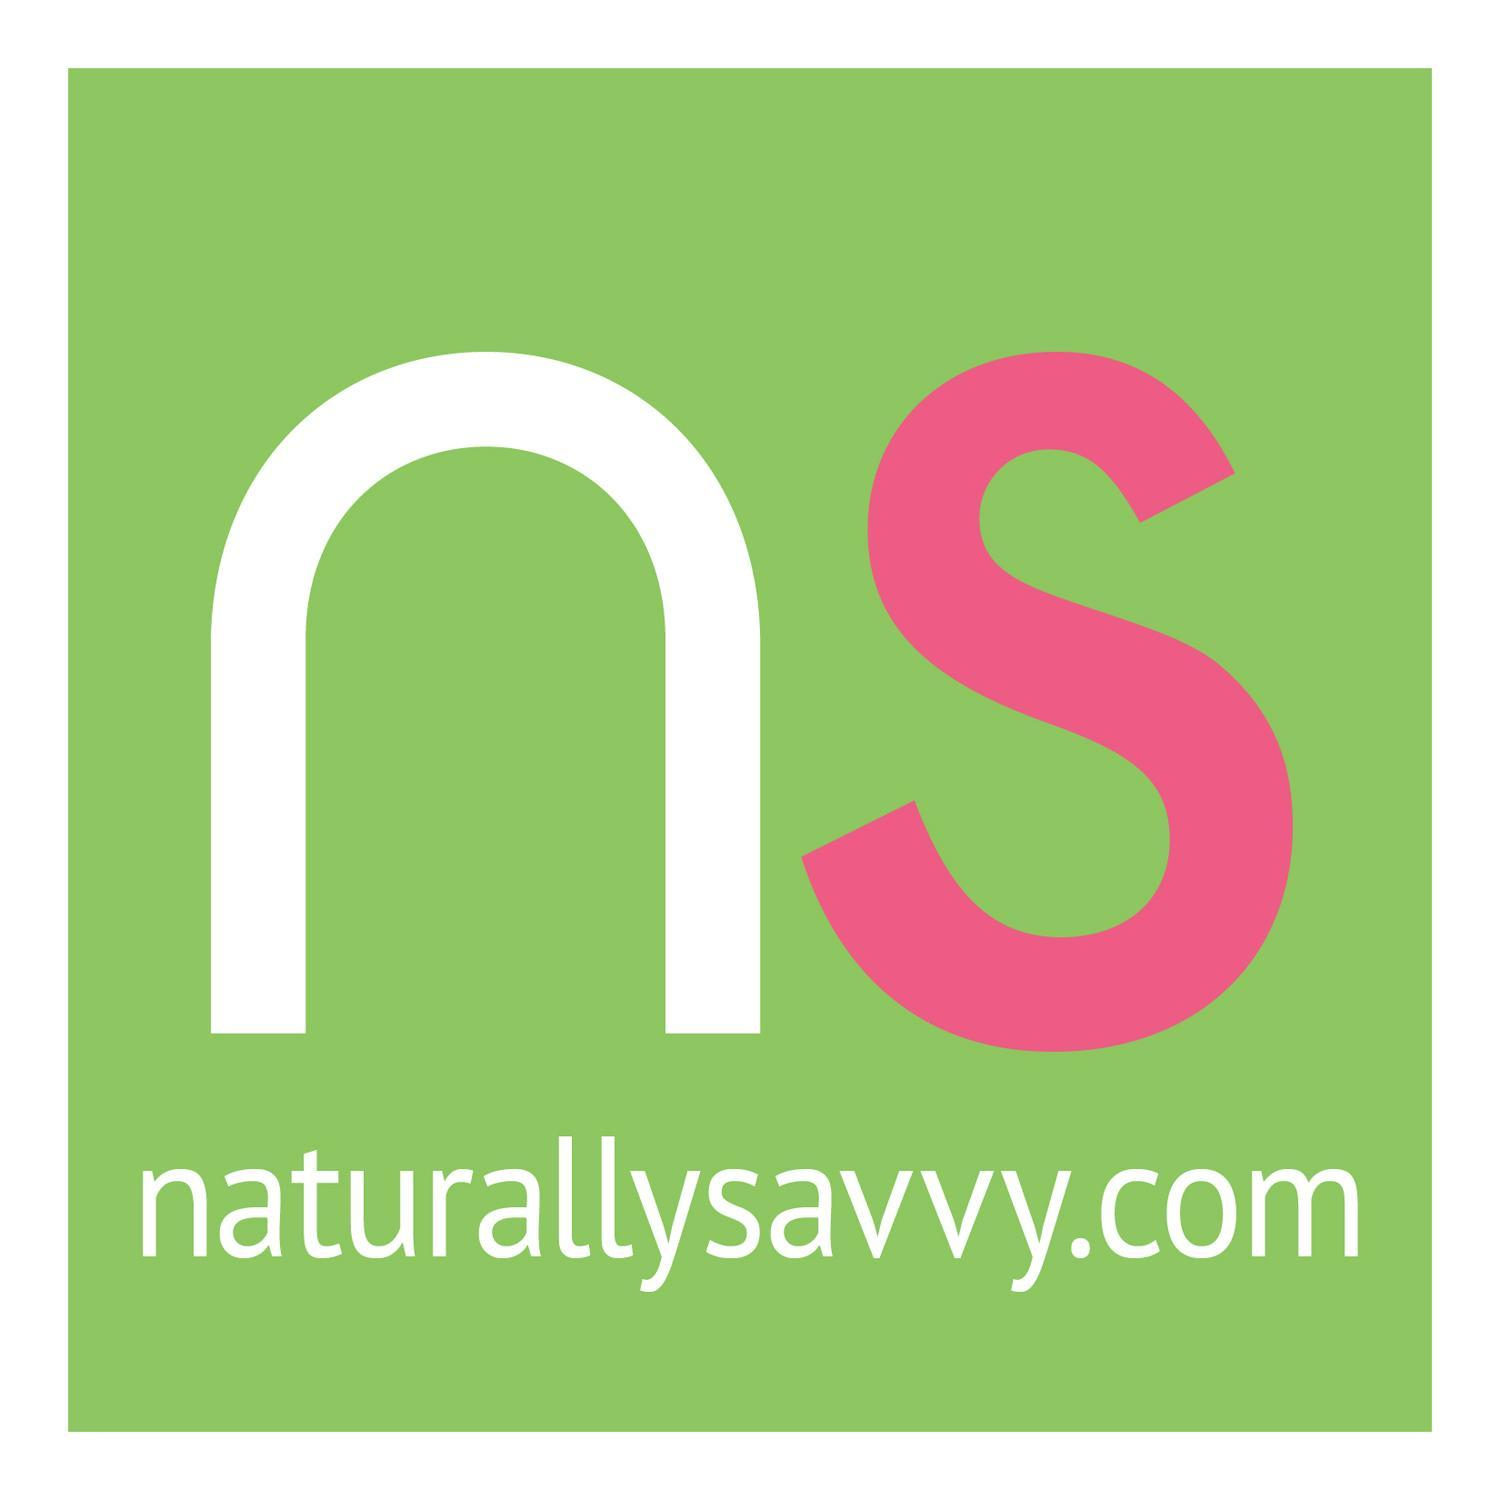 Naturally Savy logo